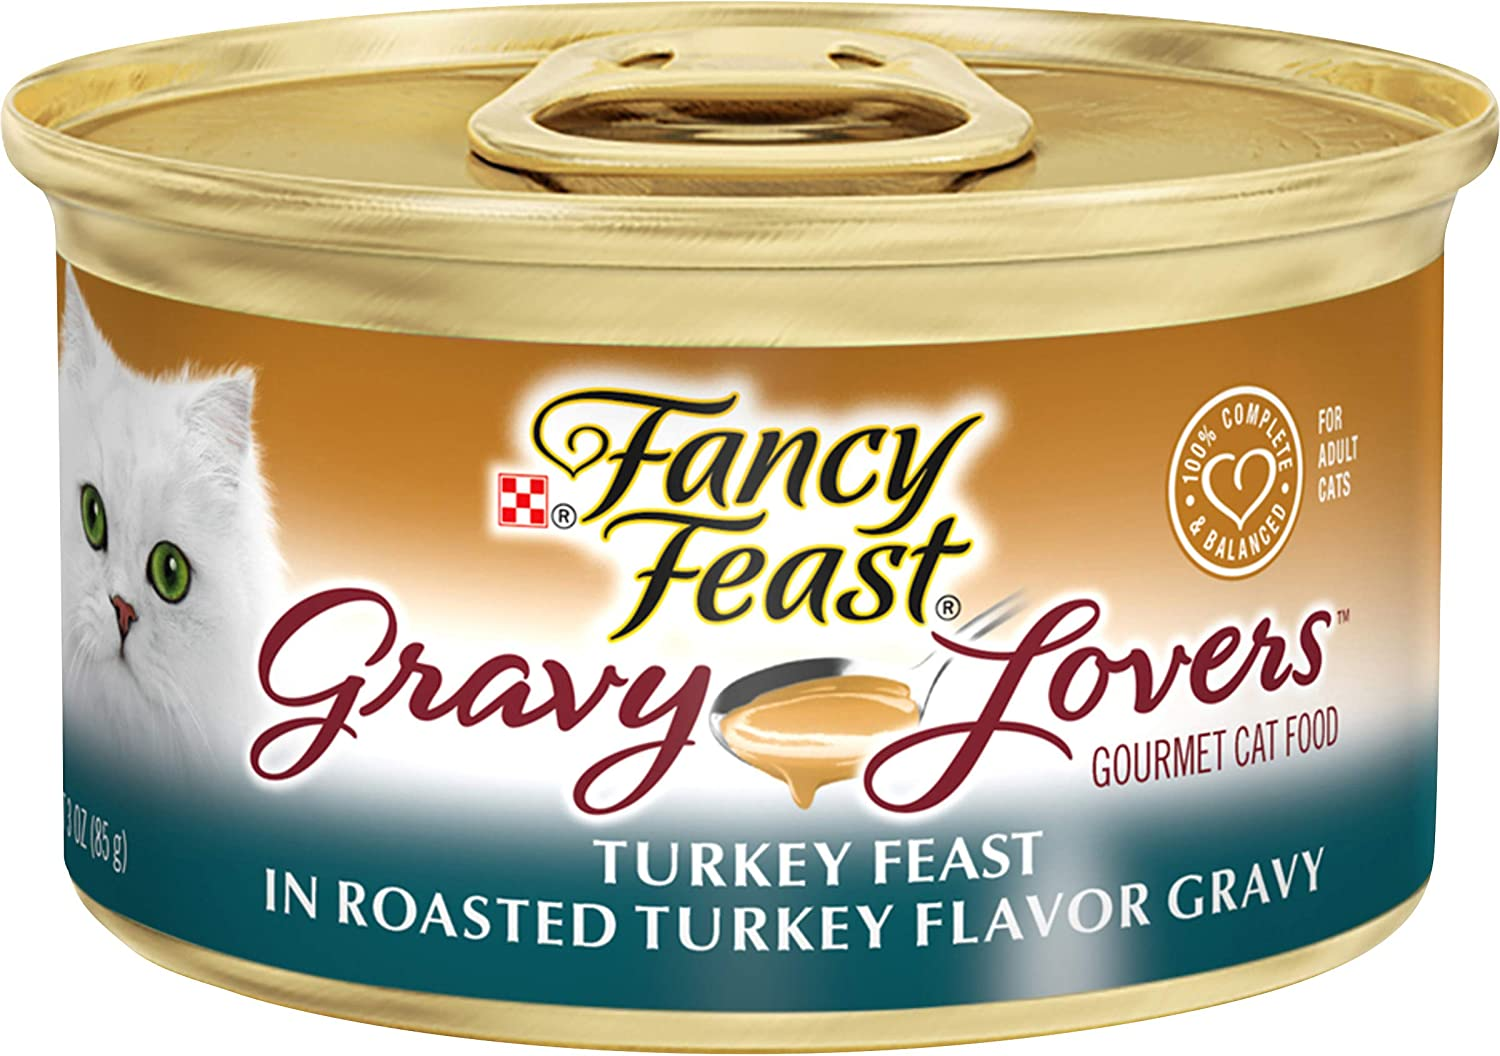 Fancy Feast Gravy Lovers Wet Cat Food, Turkey Feast in Roasted Turkey Flavor Gravy, (24) 3 Oz Cans